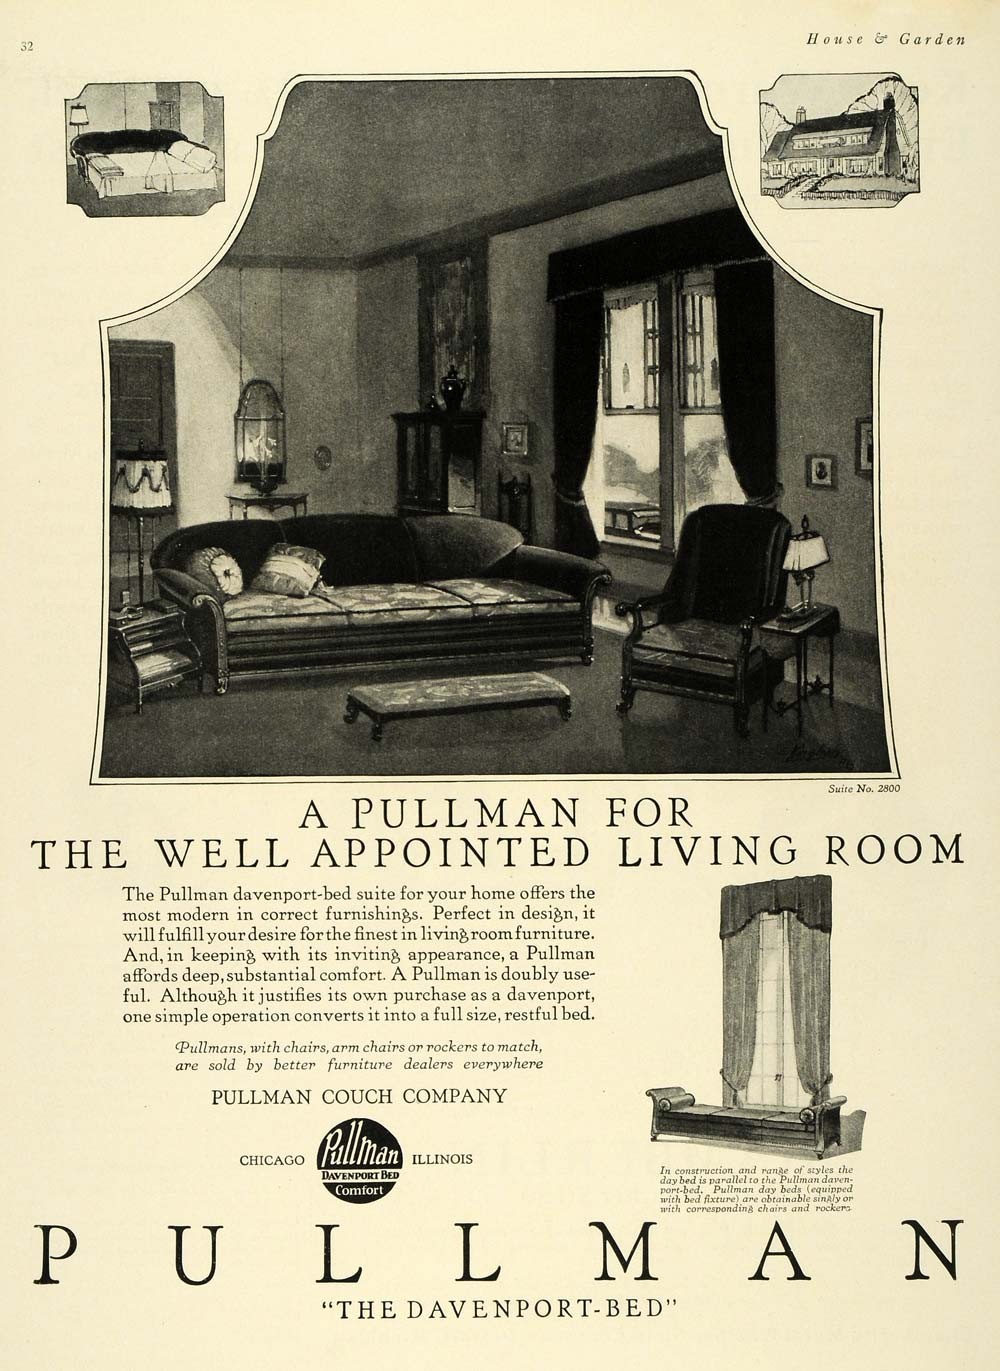 1924 Ad Pullman Couches Davenport Day Beds Furniture Original Advertising Hg1